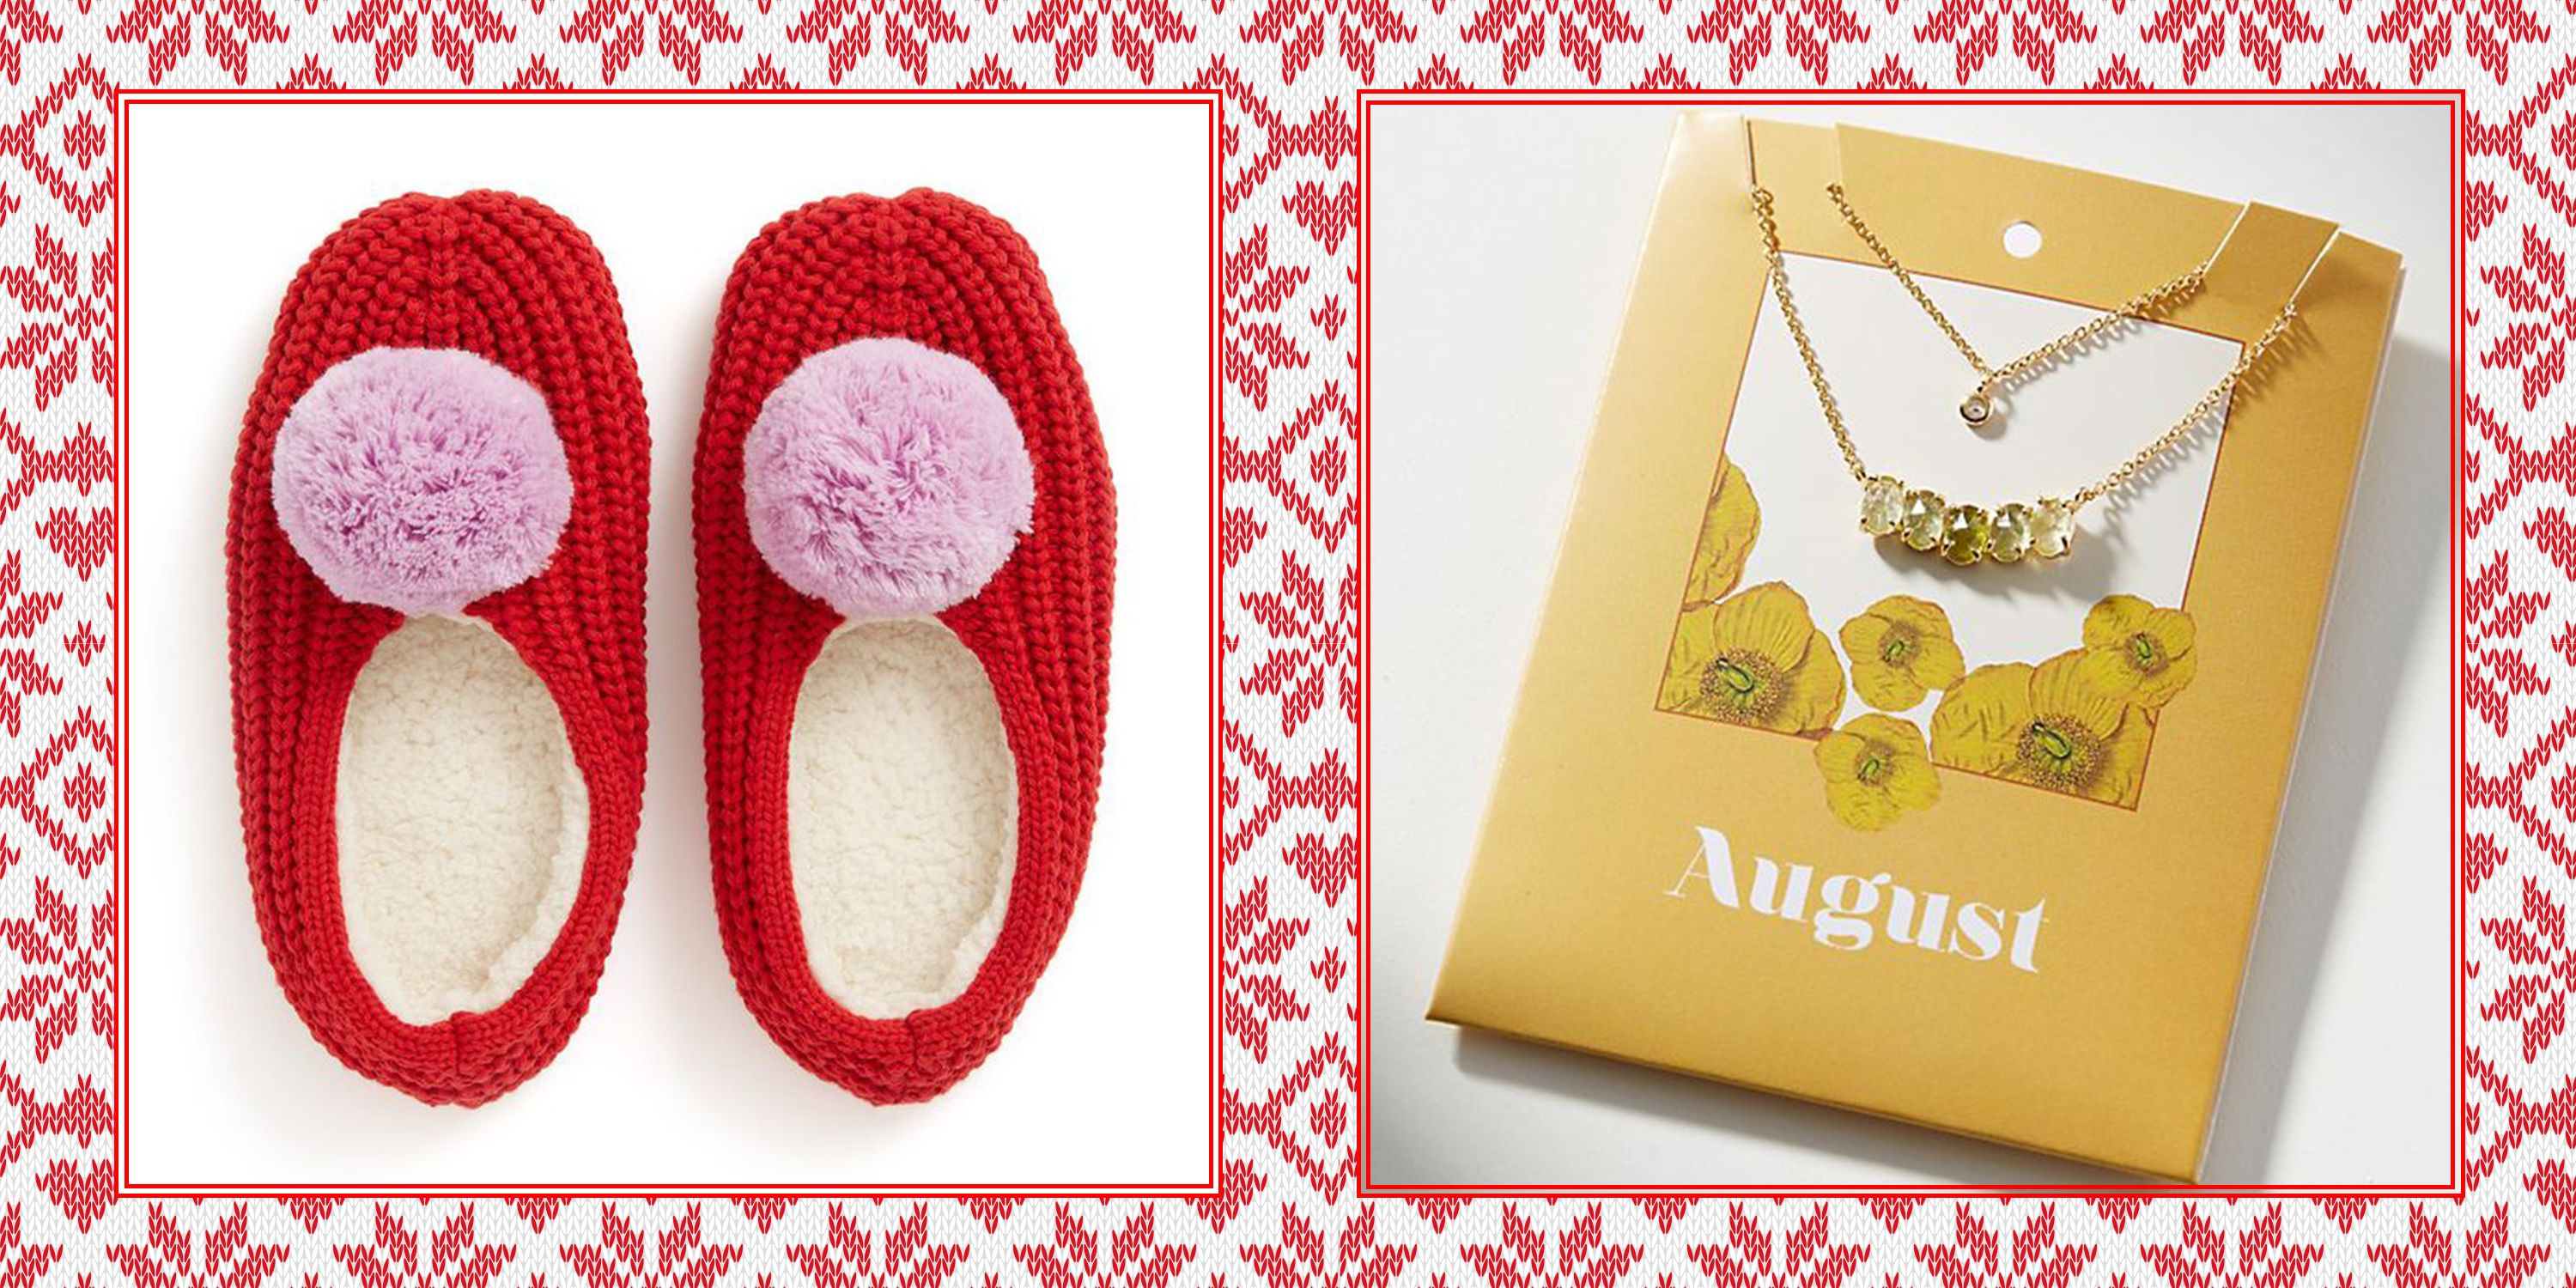 35+ Best Gifts for Teenage Girls - Top Christmas Gift Ideas for Teens